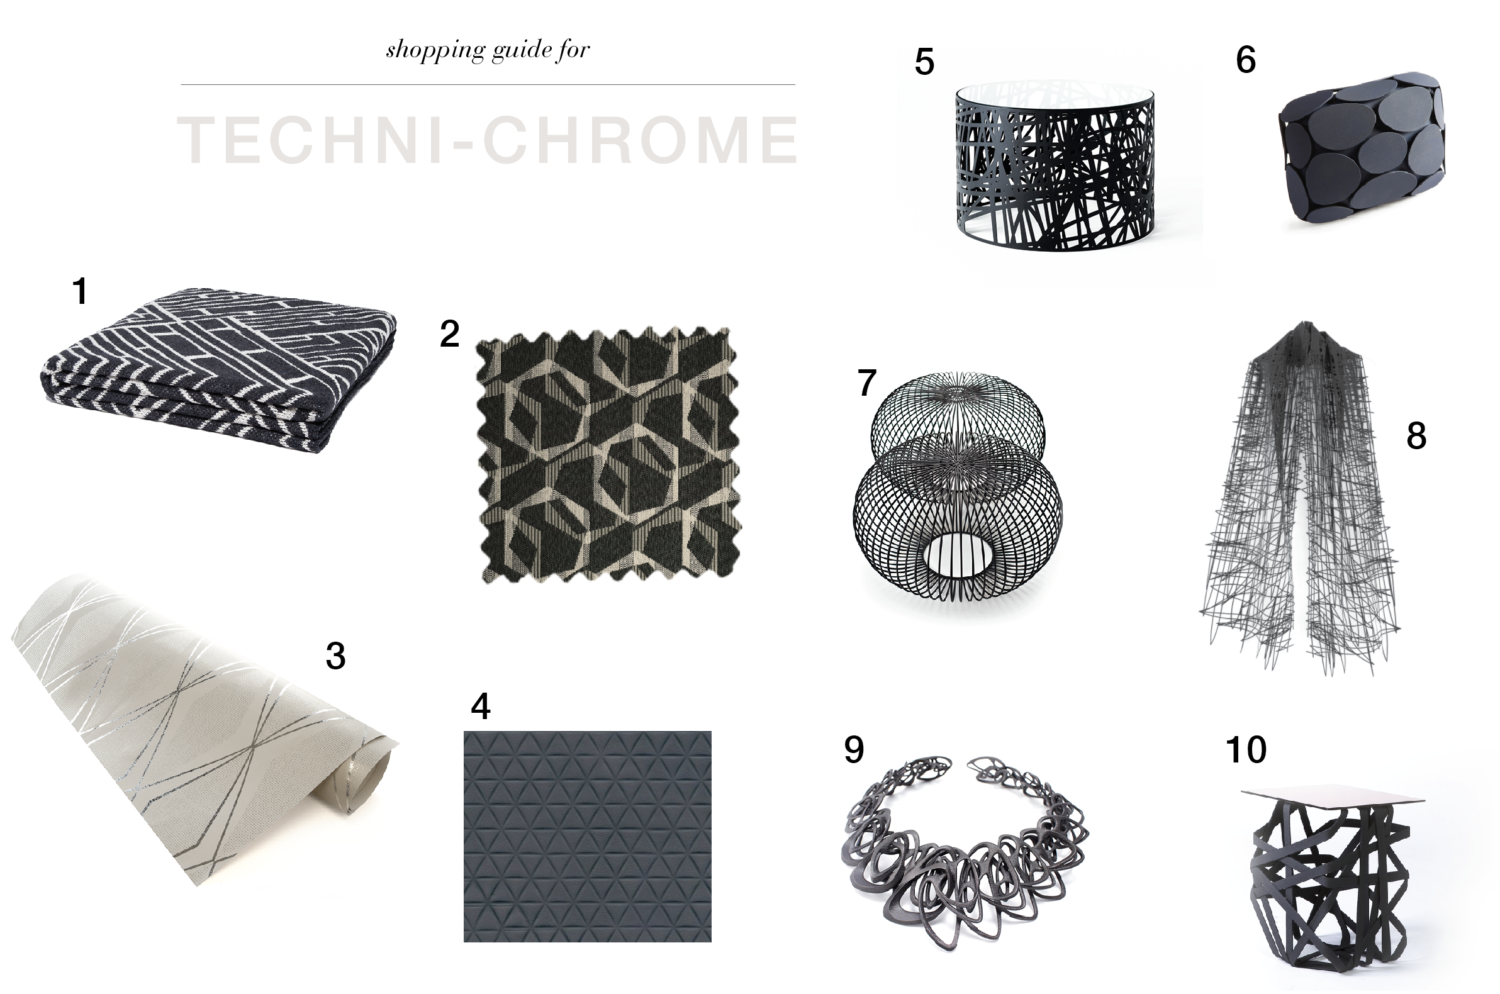 Techni-Chrome Trend Story Products